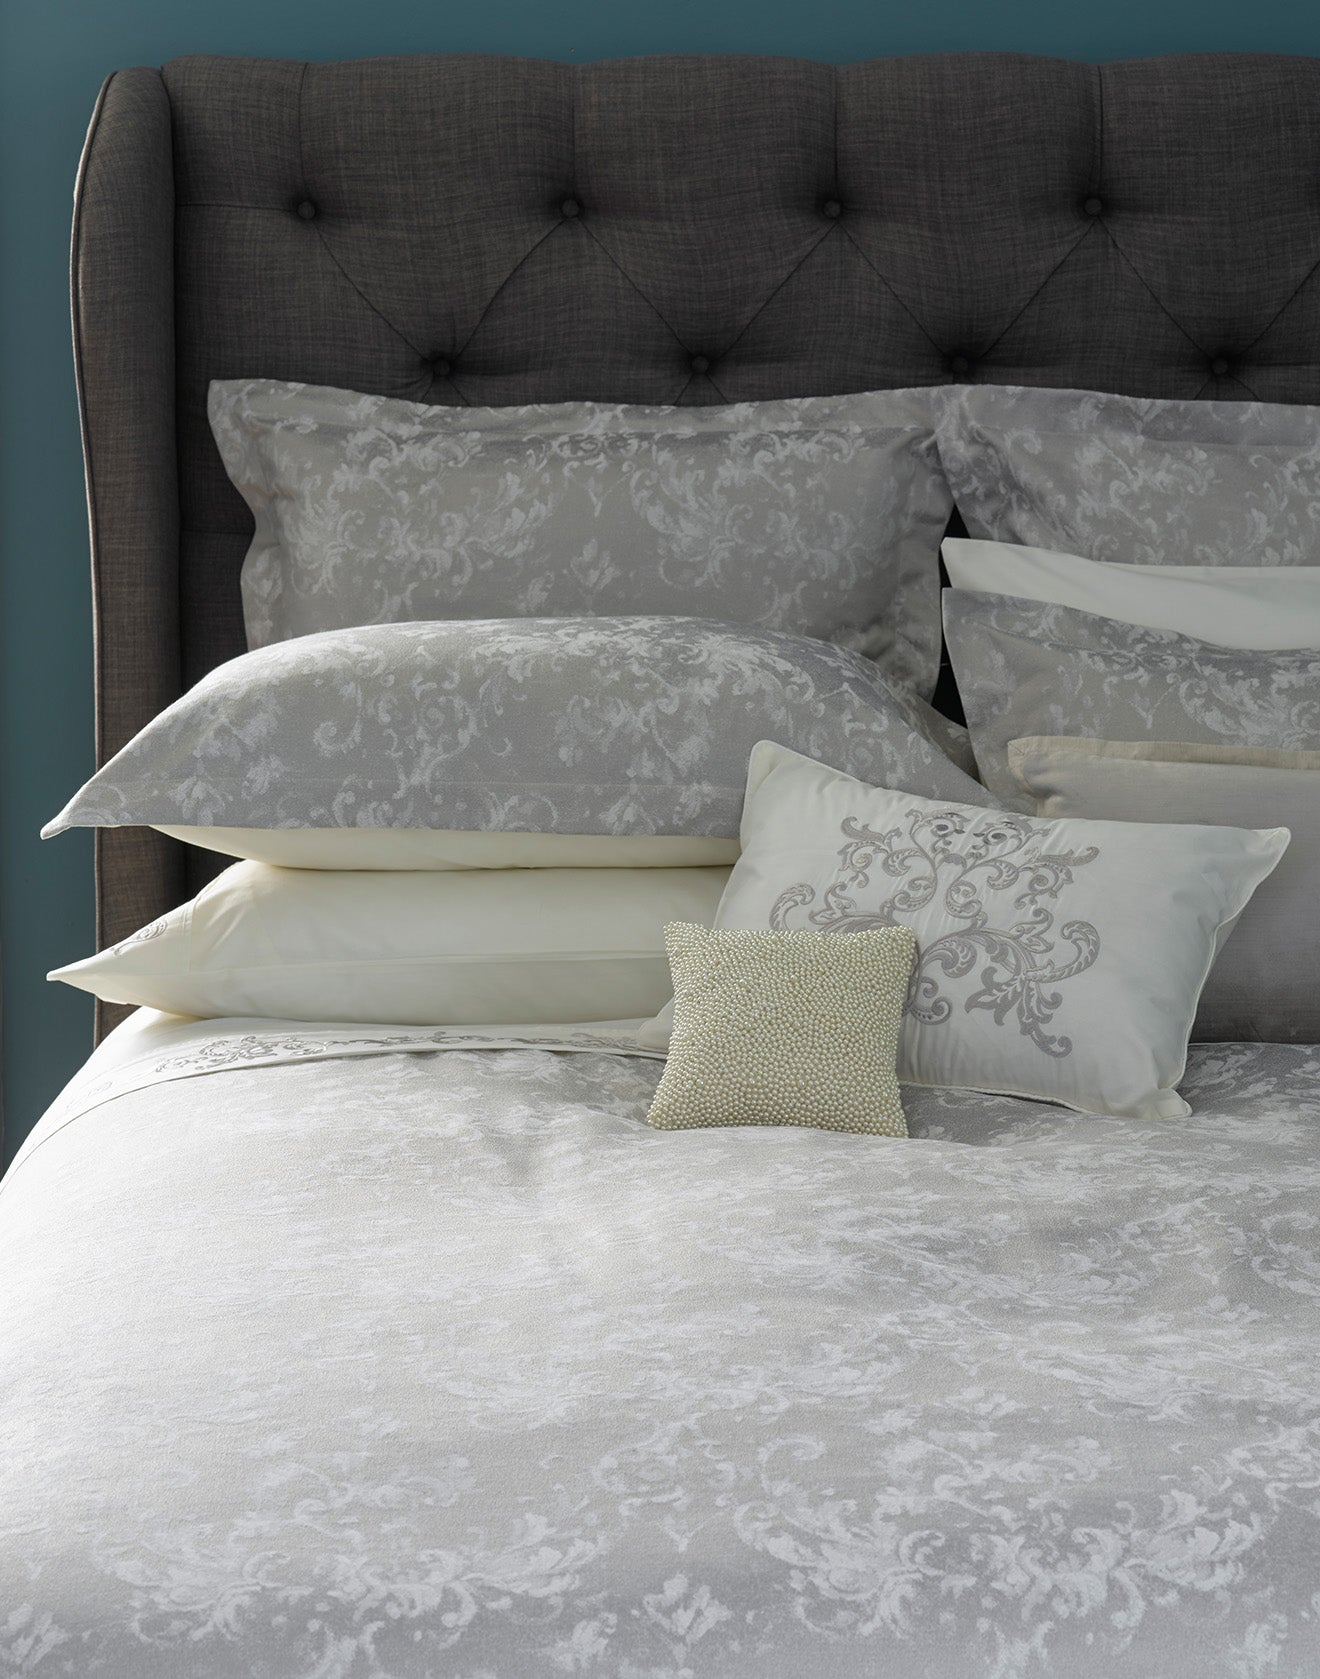 Luxury silver bedding from Christy